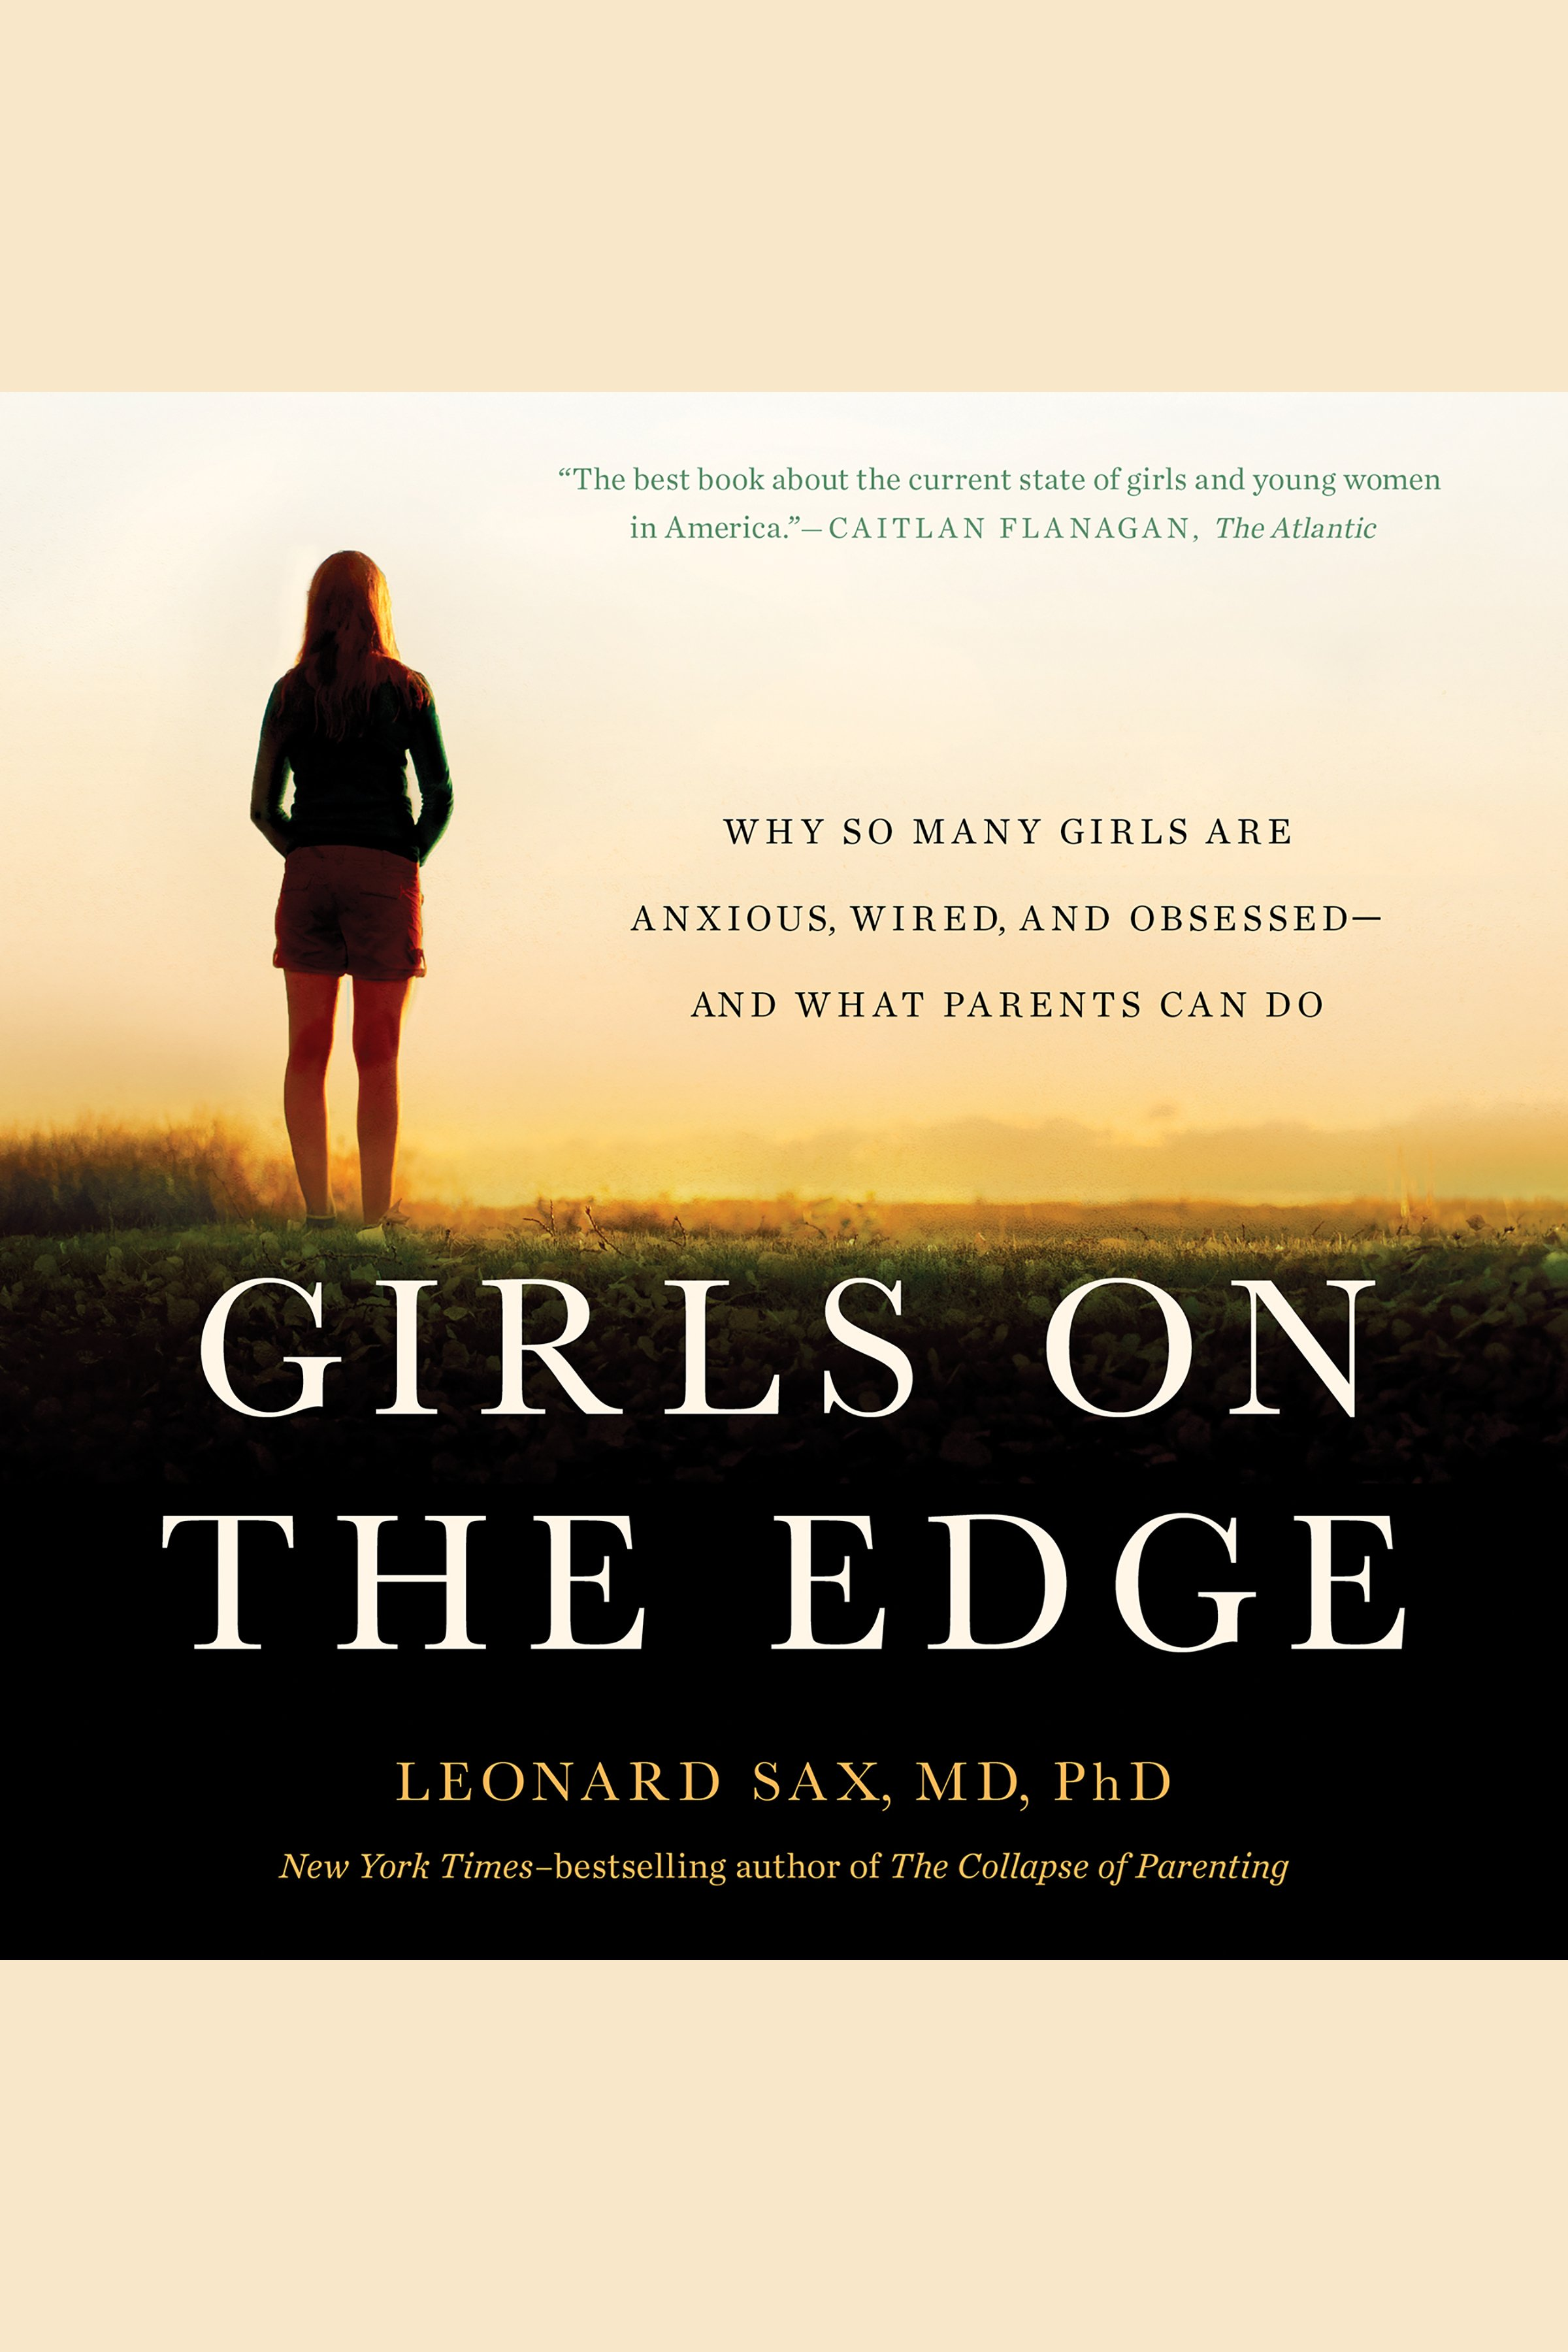 Girls on the edge : the four factors driving the new crisis for girls : sexual identity, the cyberbubble, obsessions, environmental toxins